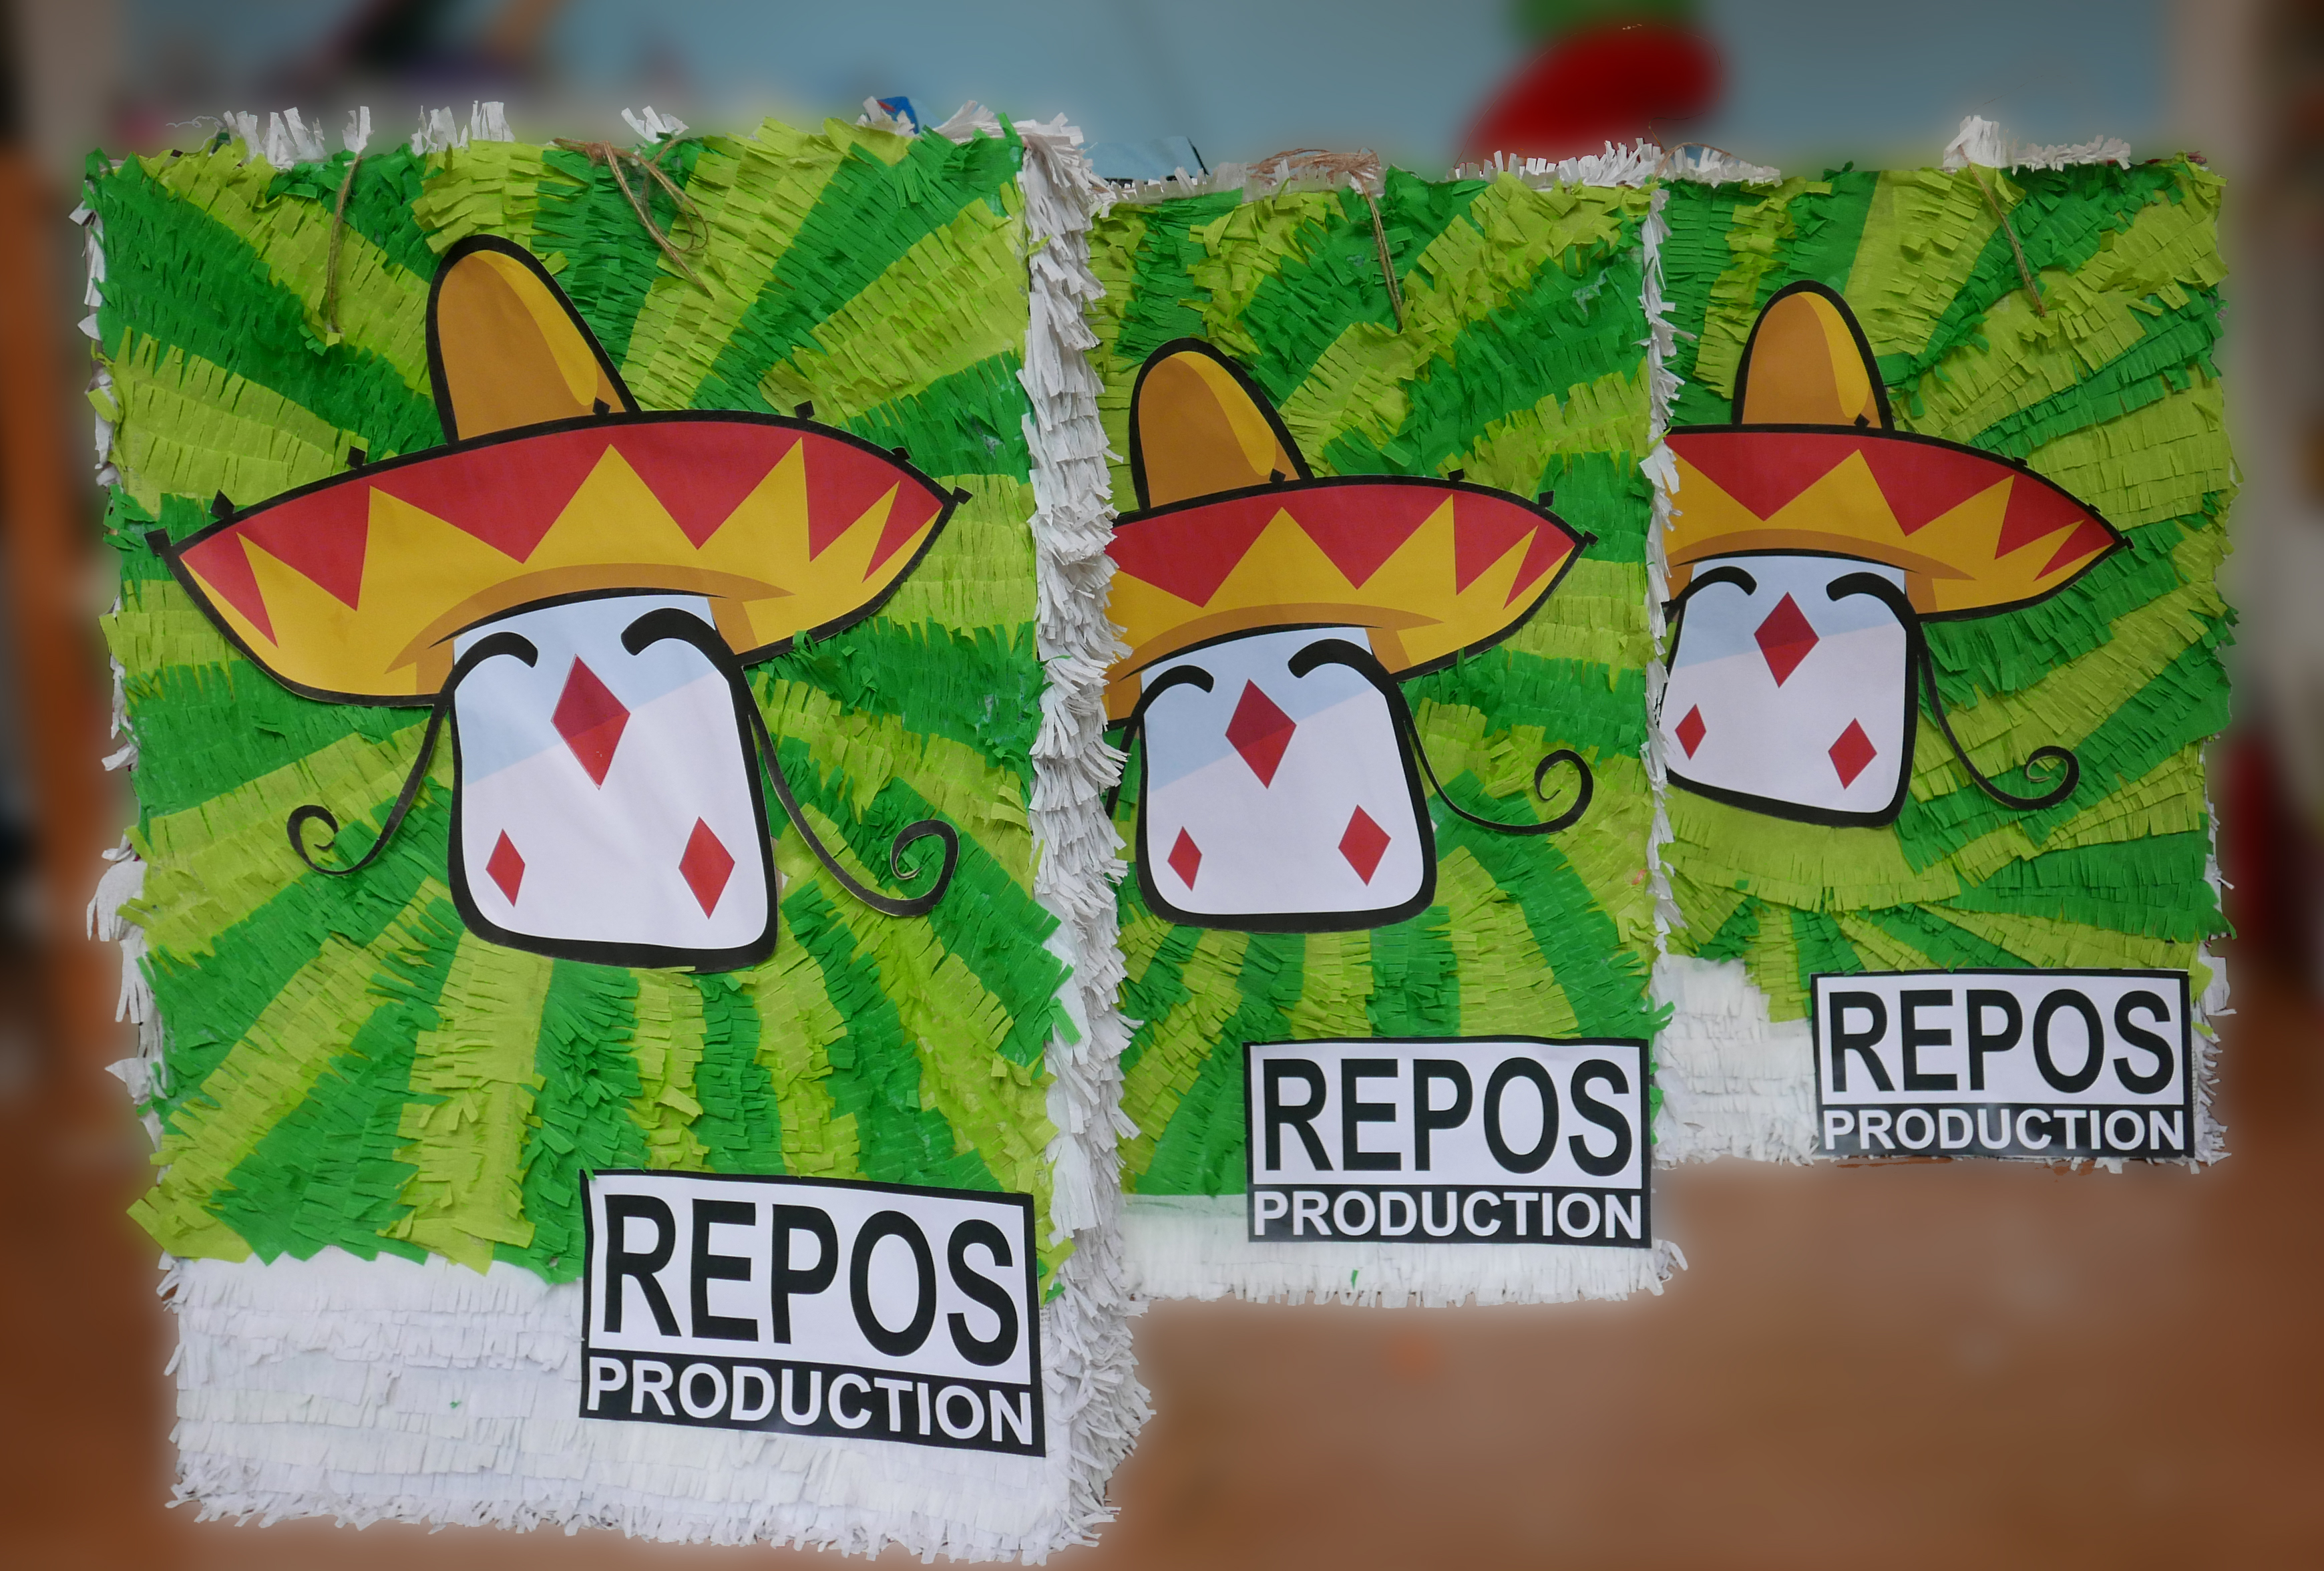 Repos Production Events